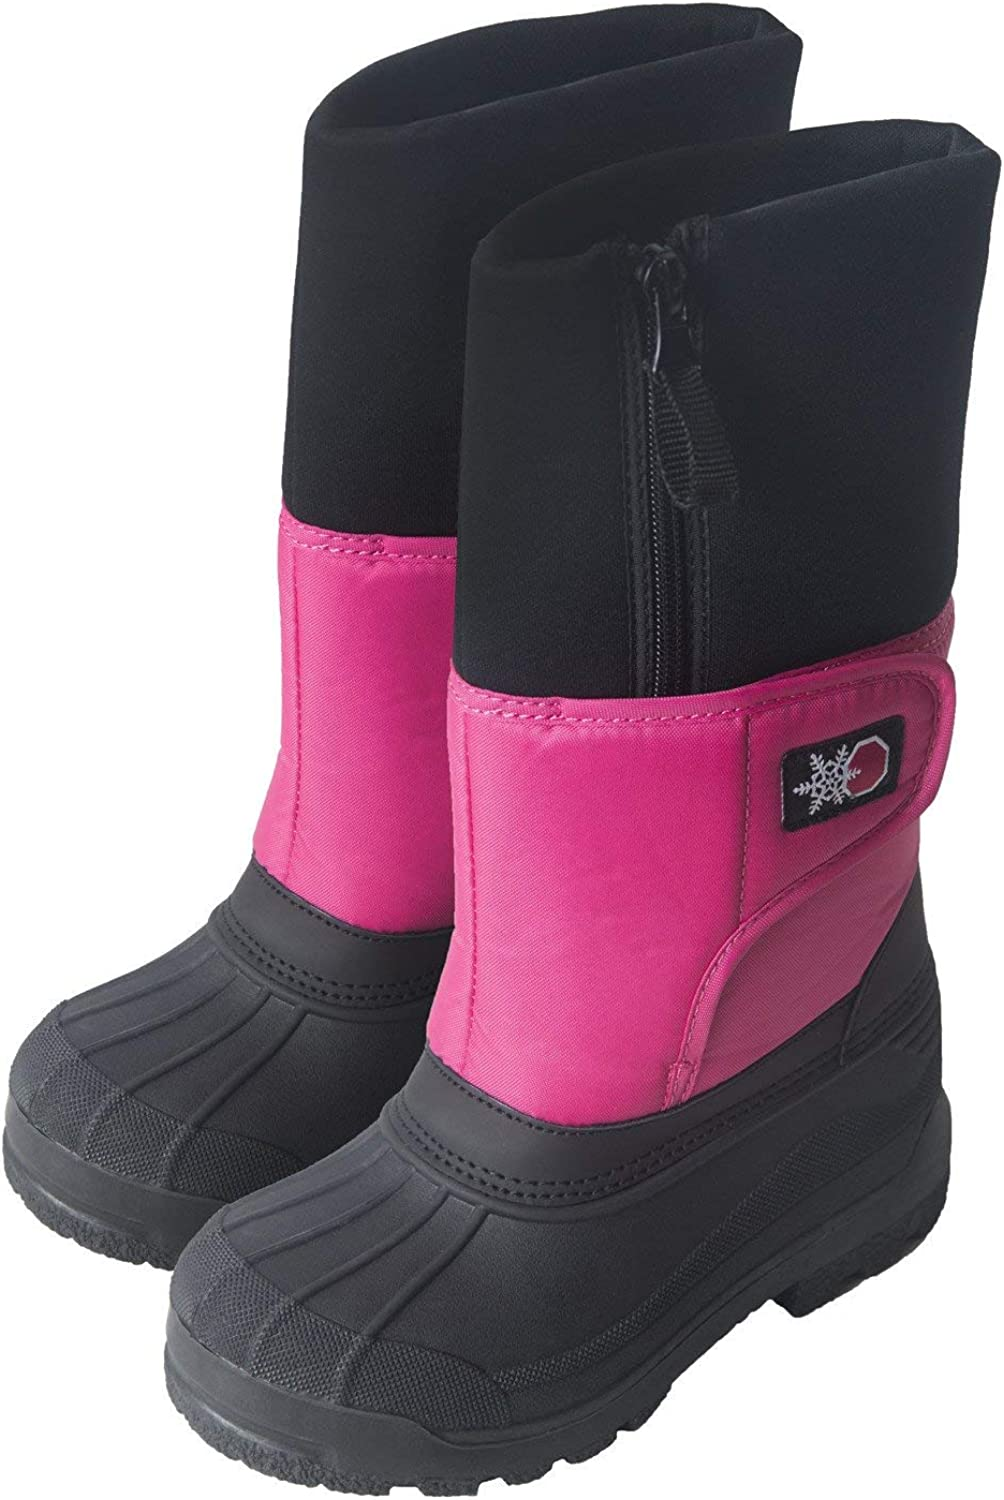 SnowStoppers Childrens Snow Boot Sleeve Long with Extra Popular shop is the lowest price Ranking TOP12 challenge